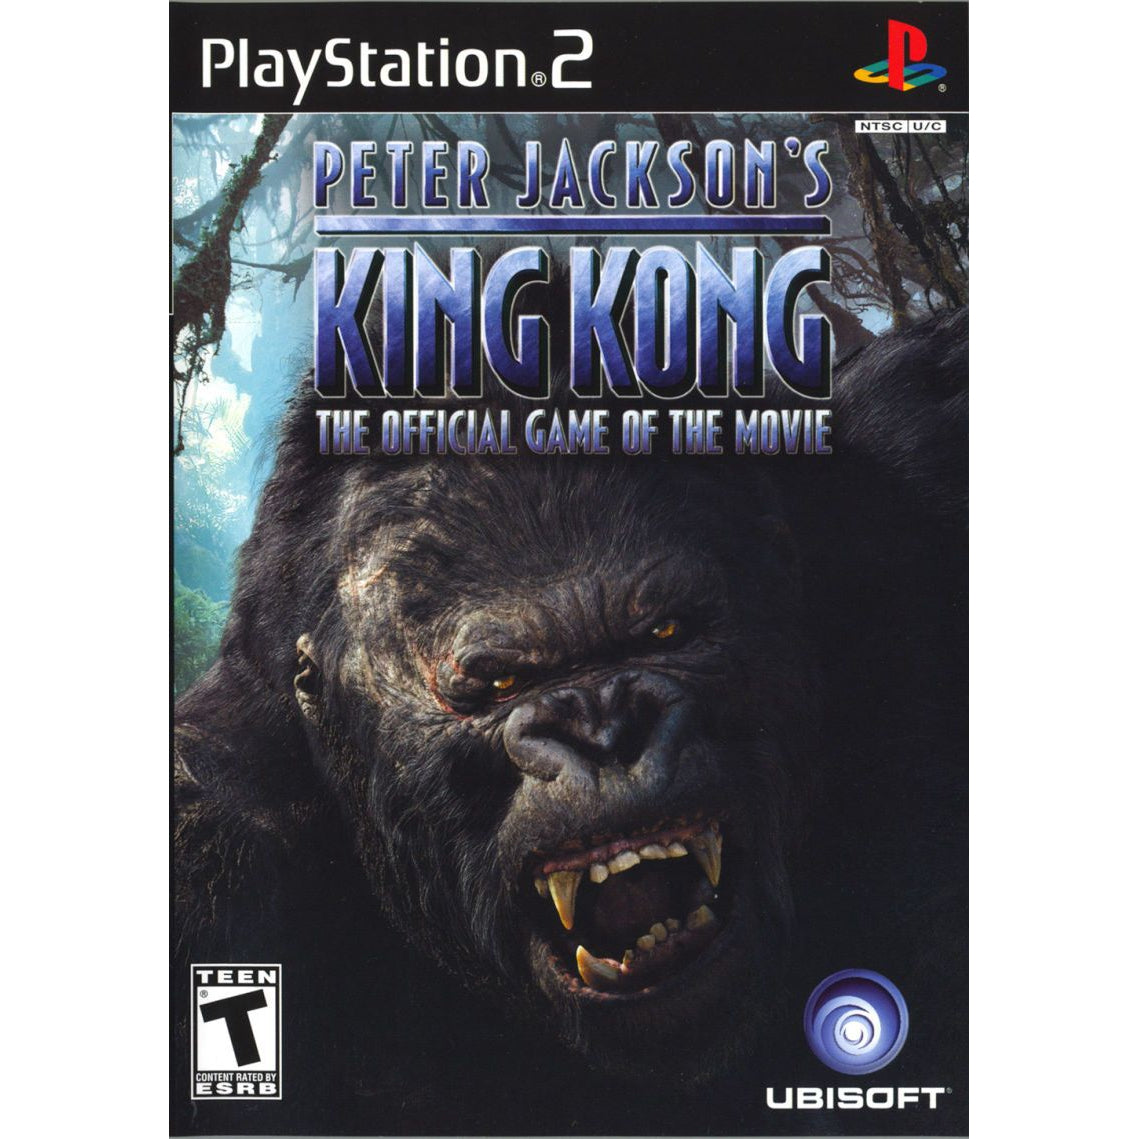 Peter Jackson's King Kong: The Official Game of the Movie - PlayStation 2 (PS2) Game Complete - YourGamingShop.com - Buy, Sell, Trade Video Games Online. 120 Day Warranty. Satisfaction Guaranteed.